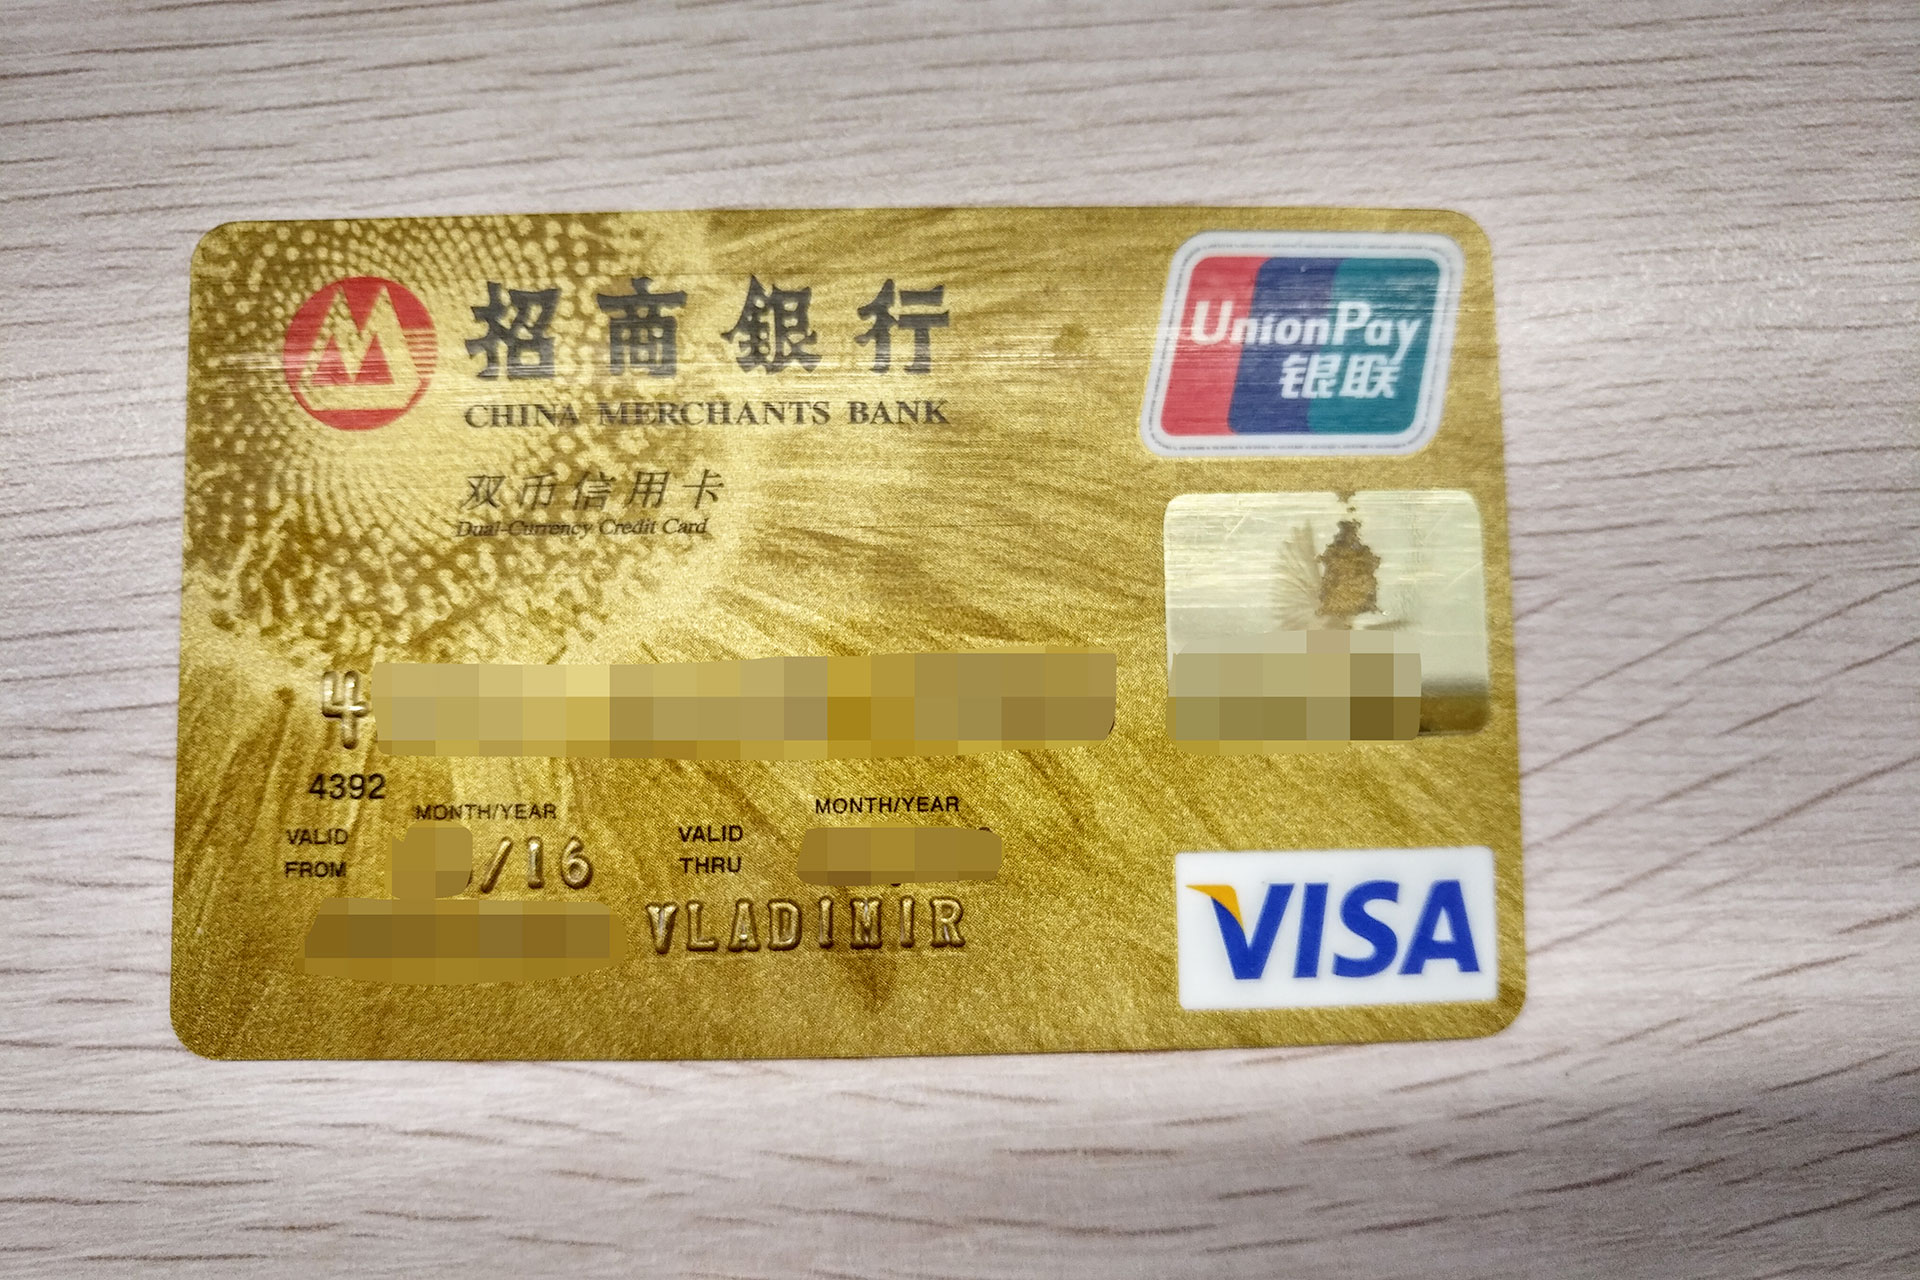 Кредитка Visa+UnionPay в China Merchants Bank